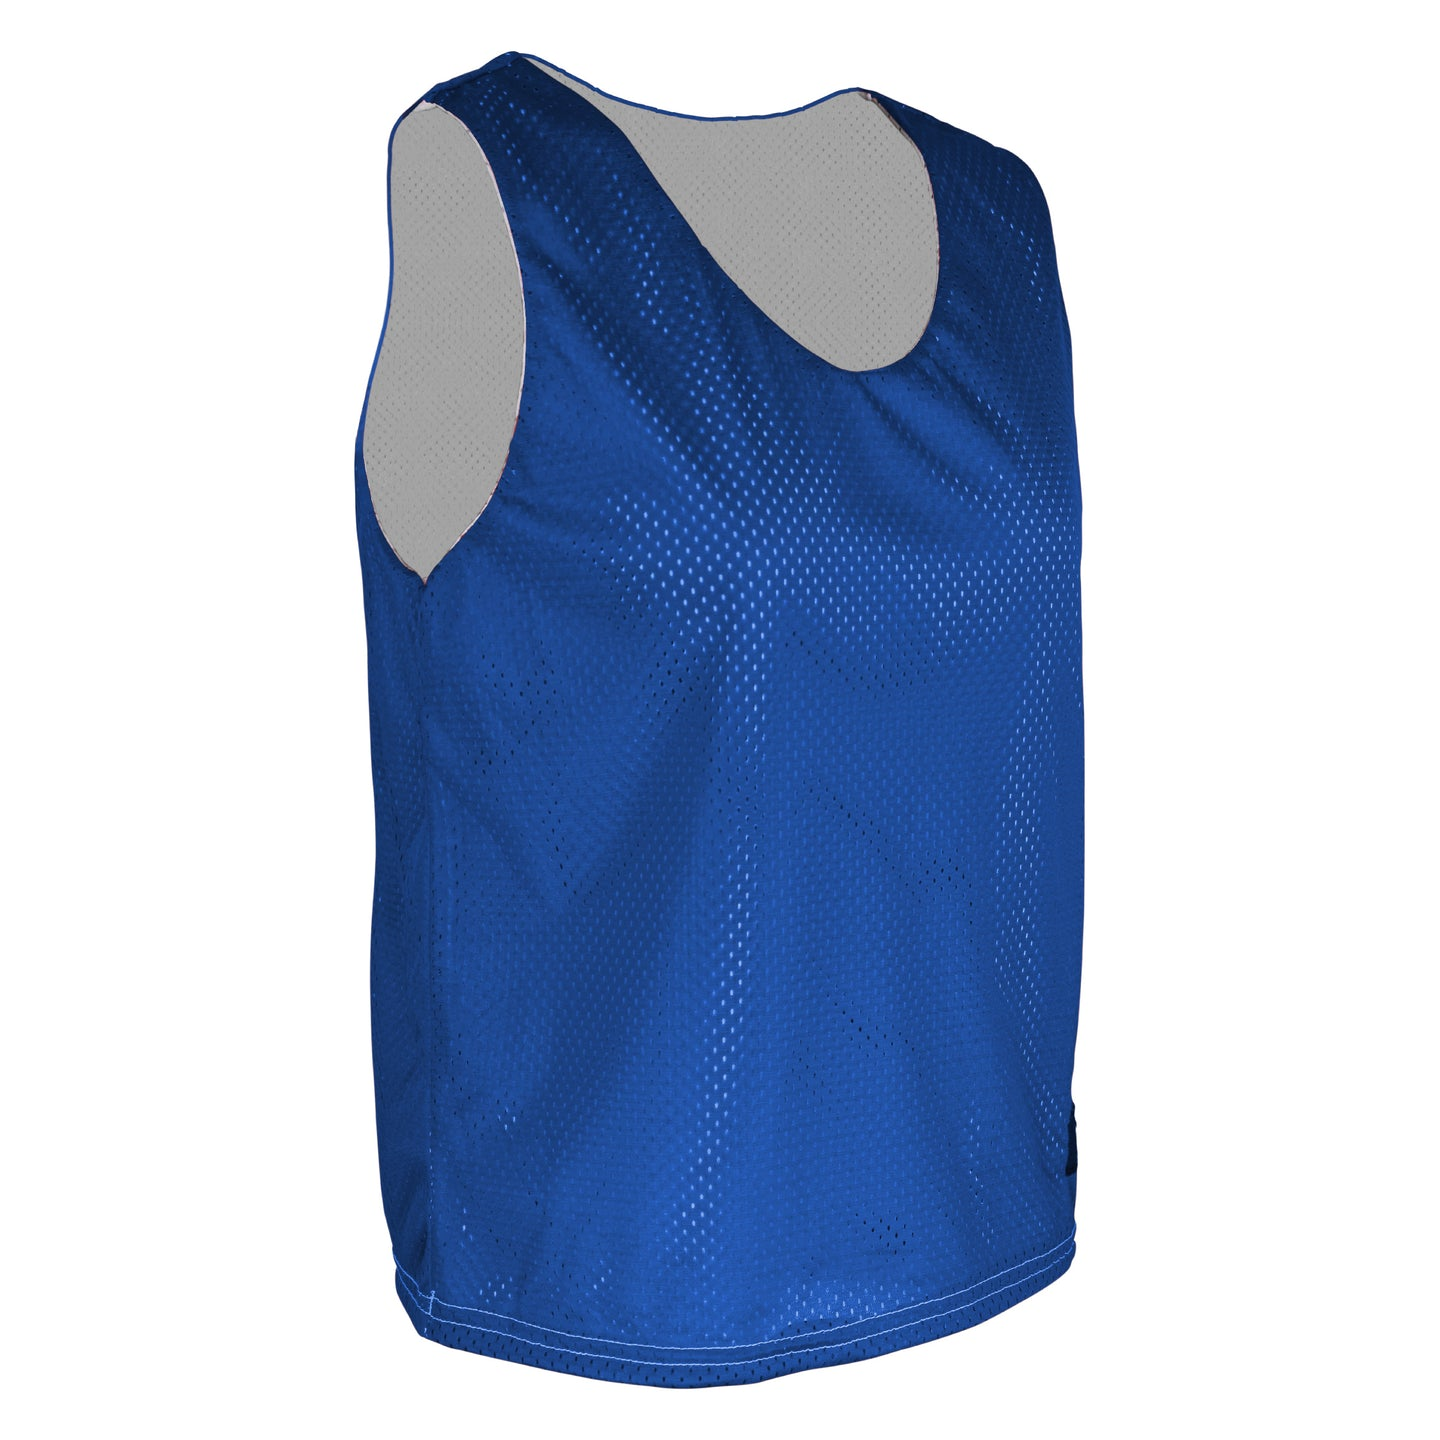 AP-896W-CB Women's Athletic Mesh Poly Round Neck Sleeveless Reversible Jersey